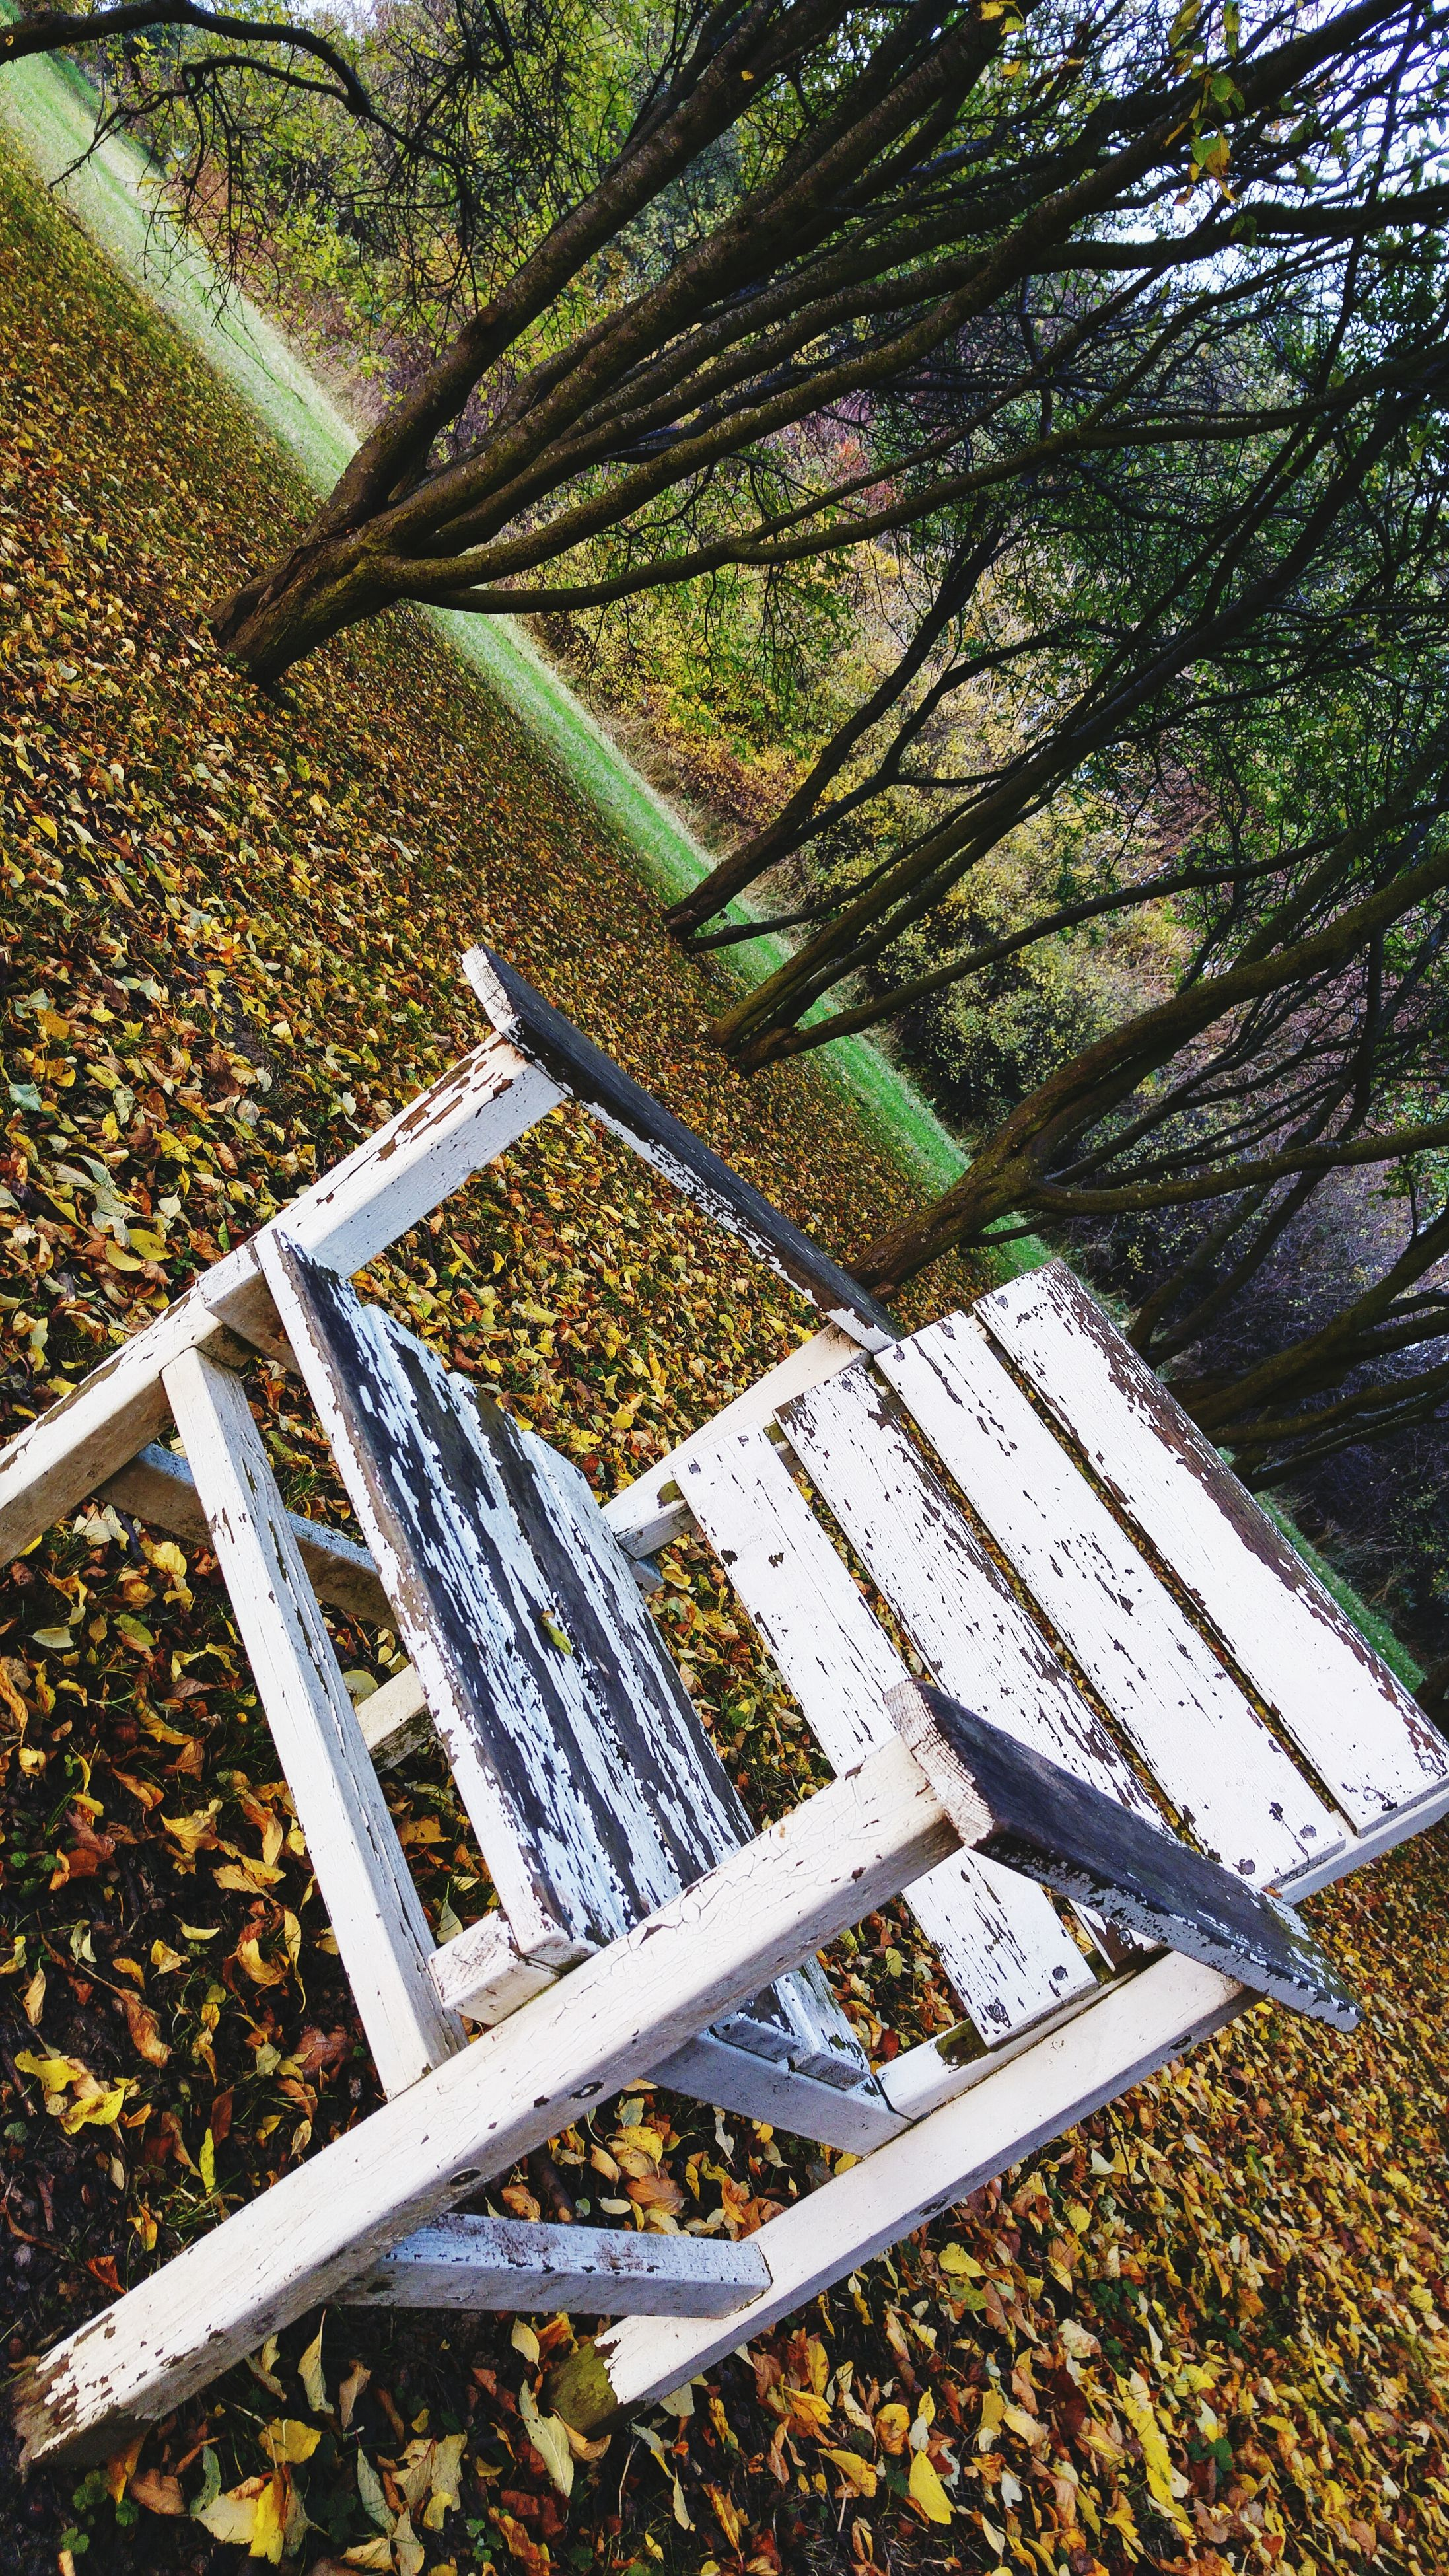 tree, leaf, growth, high angle view, nature, sunlight, day, tranquility, field, park - man made space, autumn, outdoors, abundance, plant, no people, shadow, dry, fence, leaves, fallen